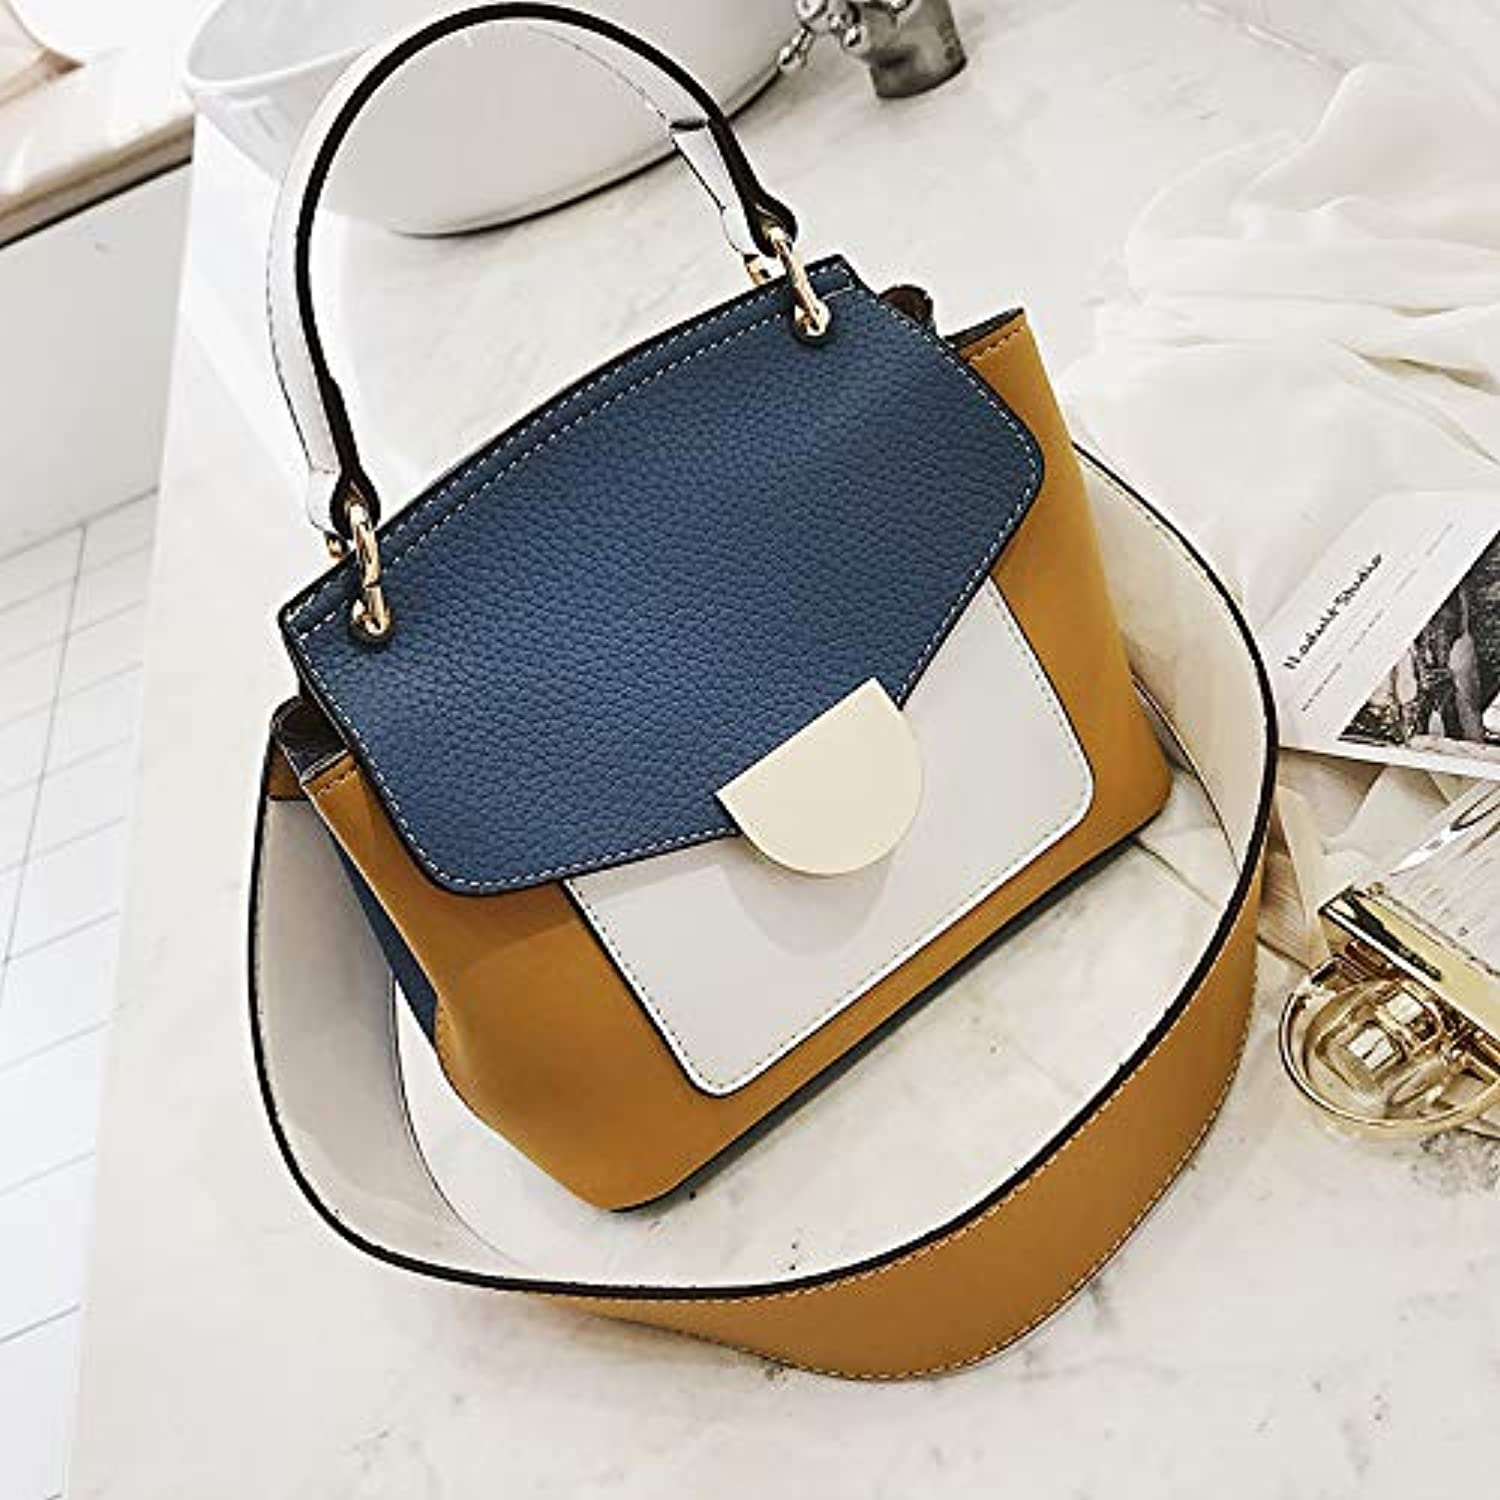 WANGZHAO Handbag, Shoulder Bag, Sloping Bag, Simple Leisure